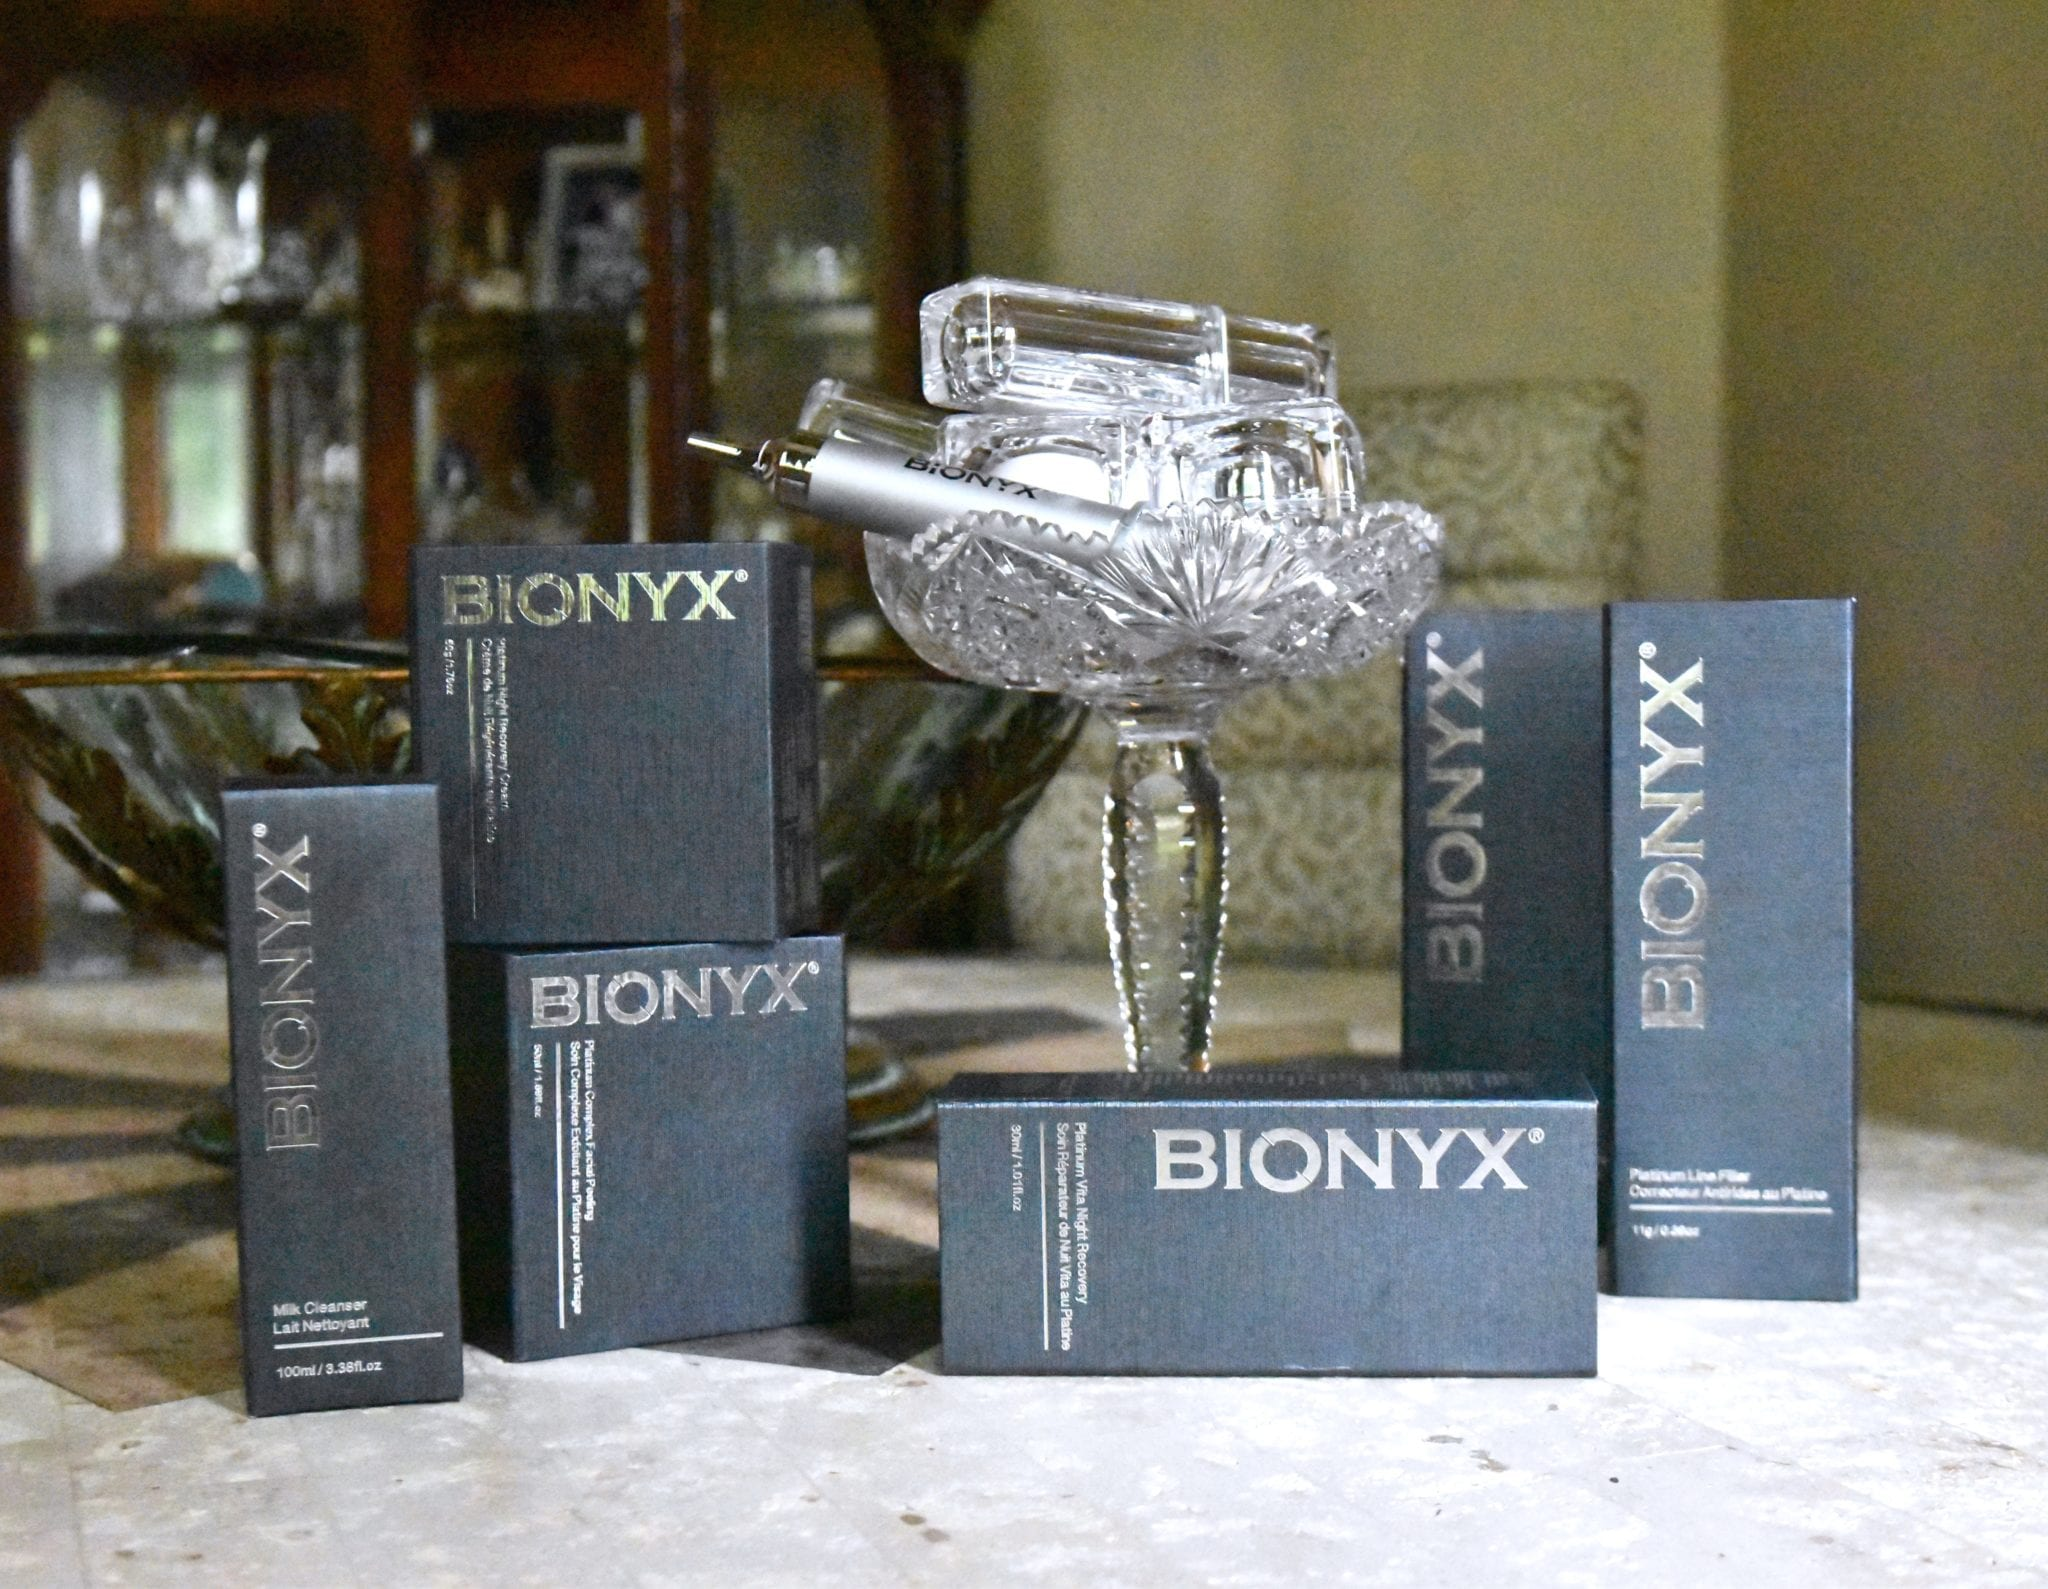 skin care, Bionyx, anti-aging products,